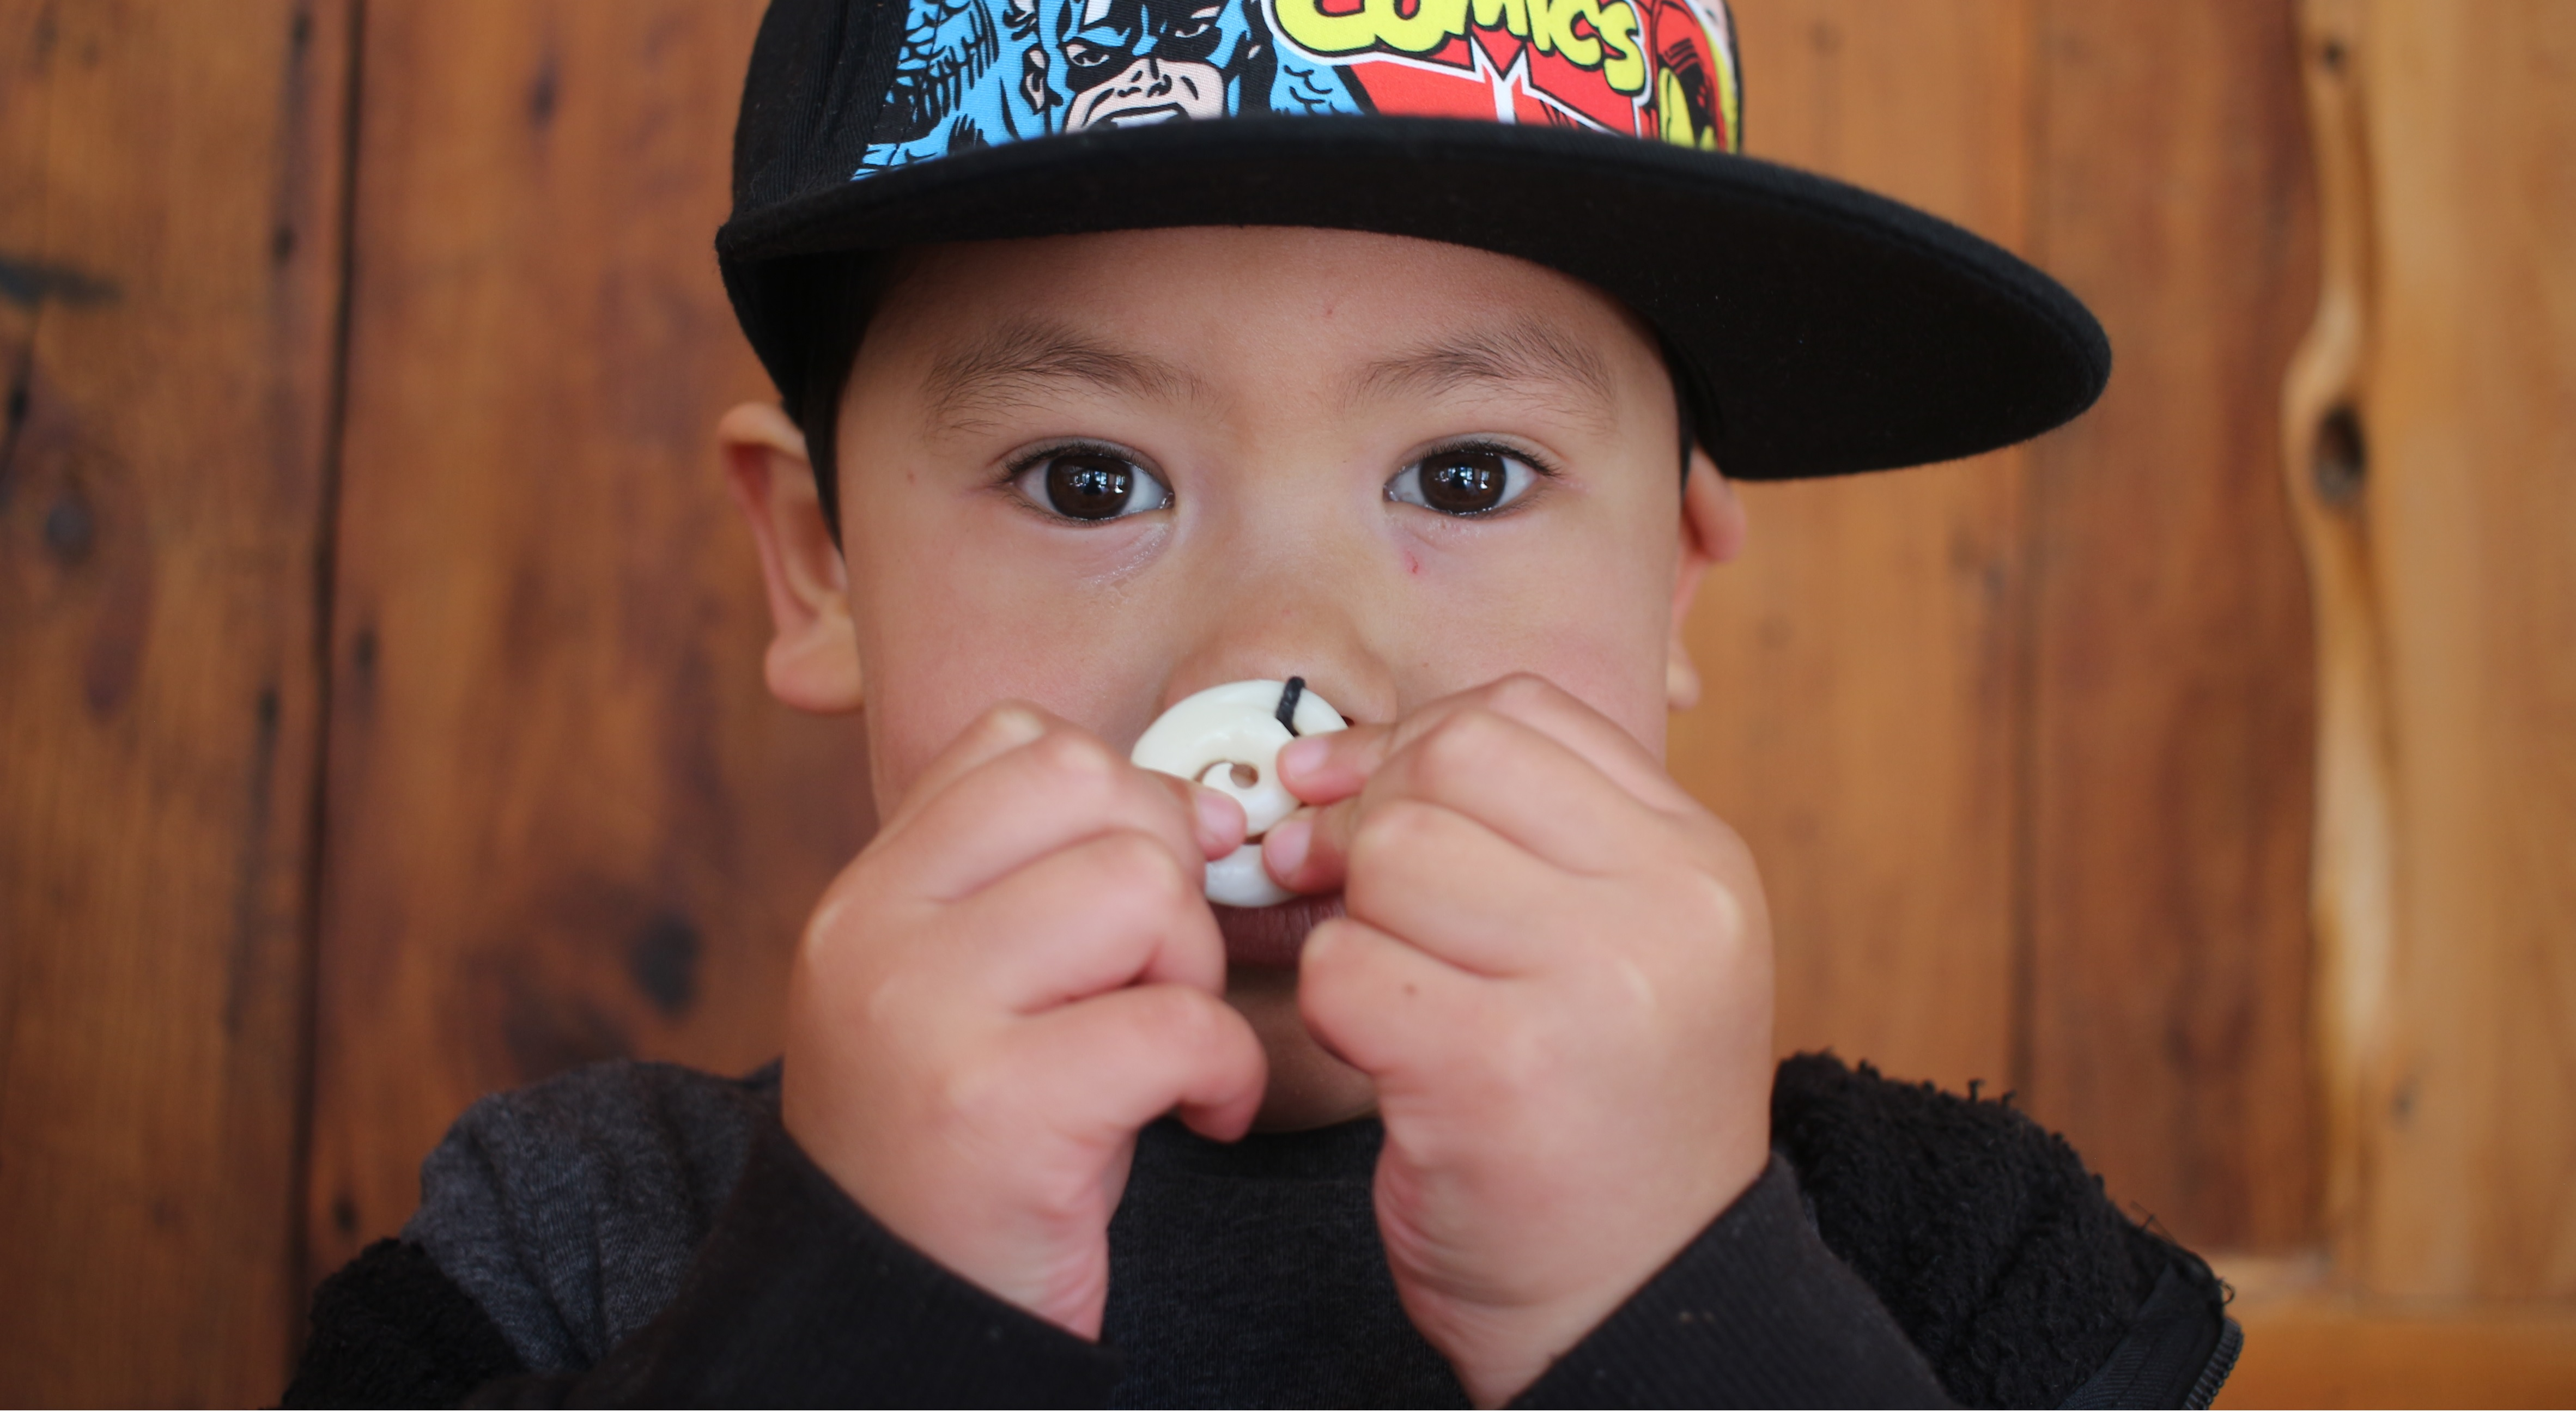 A young child holding a small circular white object close to his face